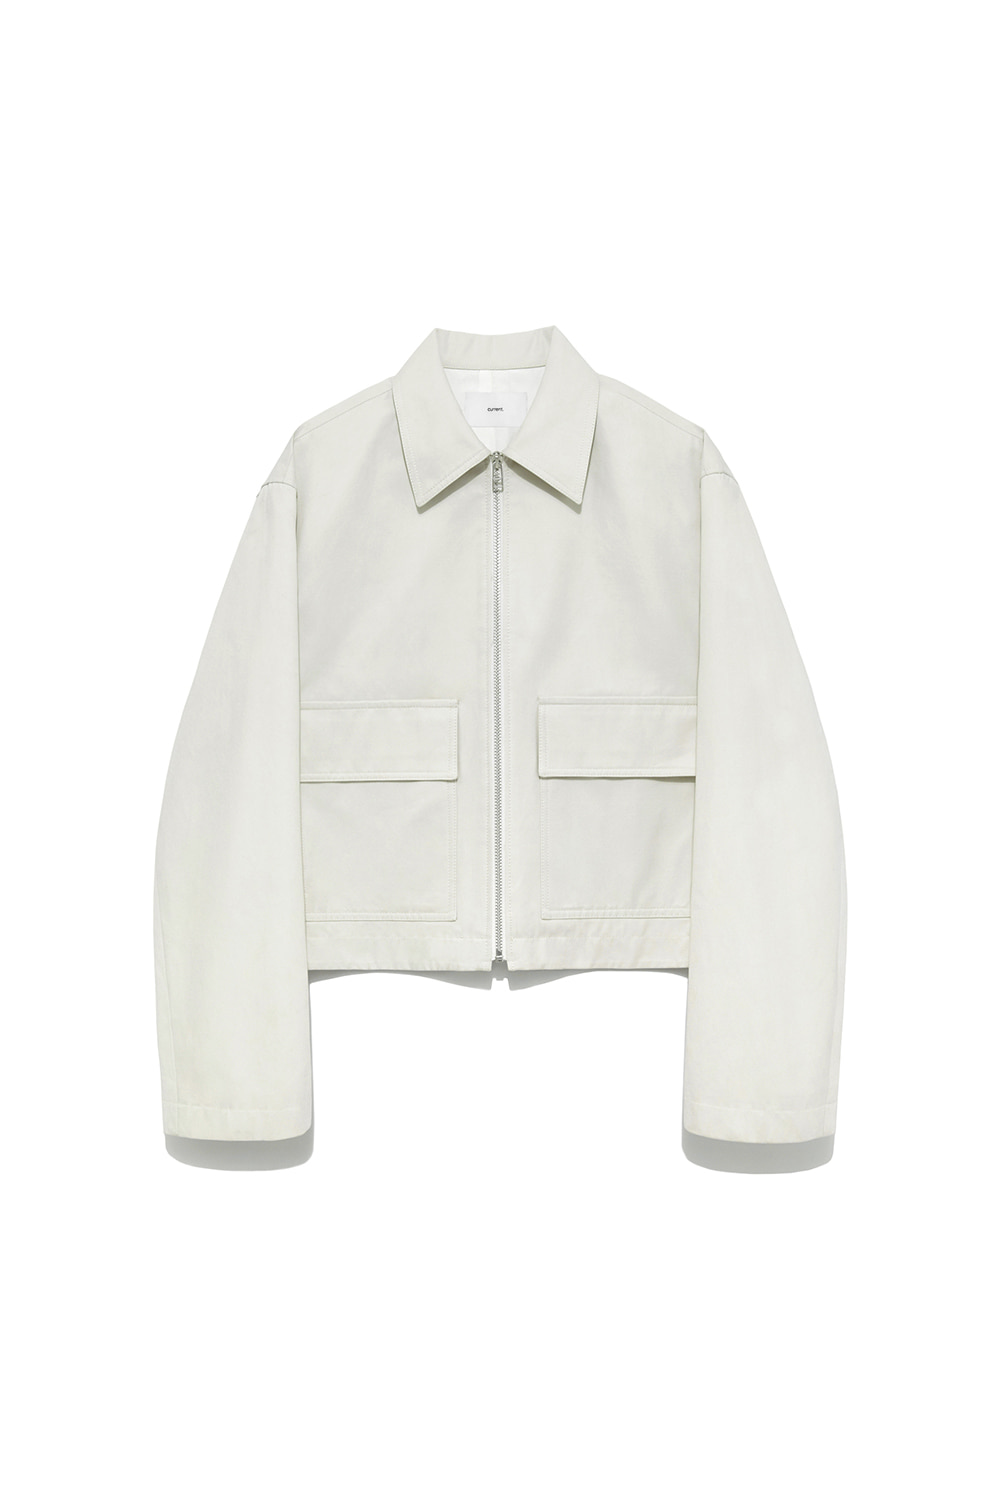 Two Pocket Crop Jacket Women [White]